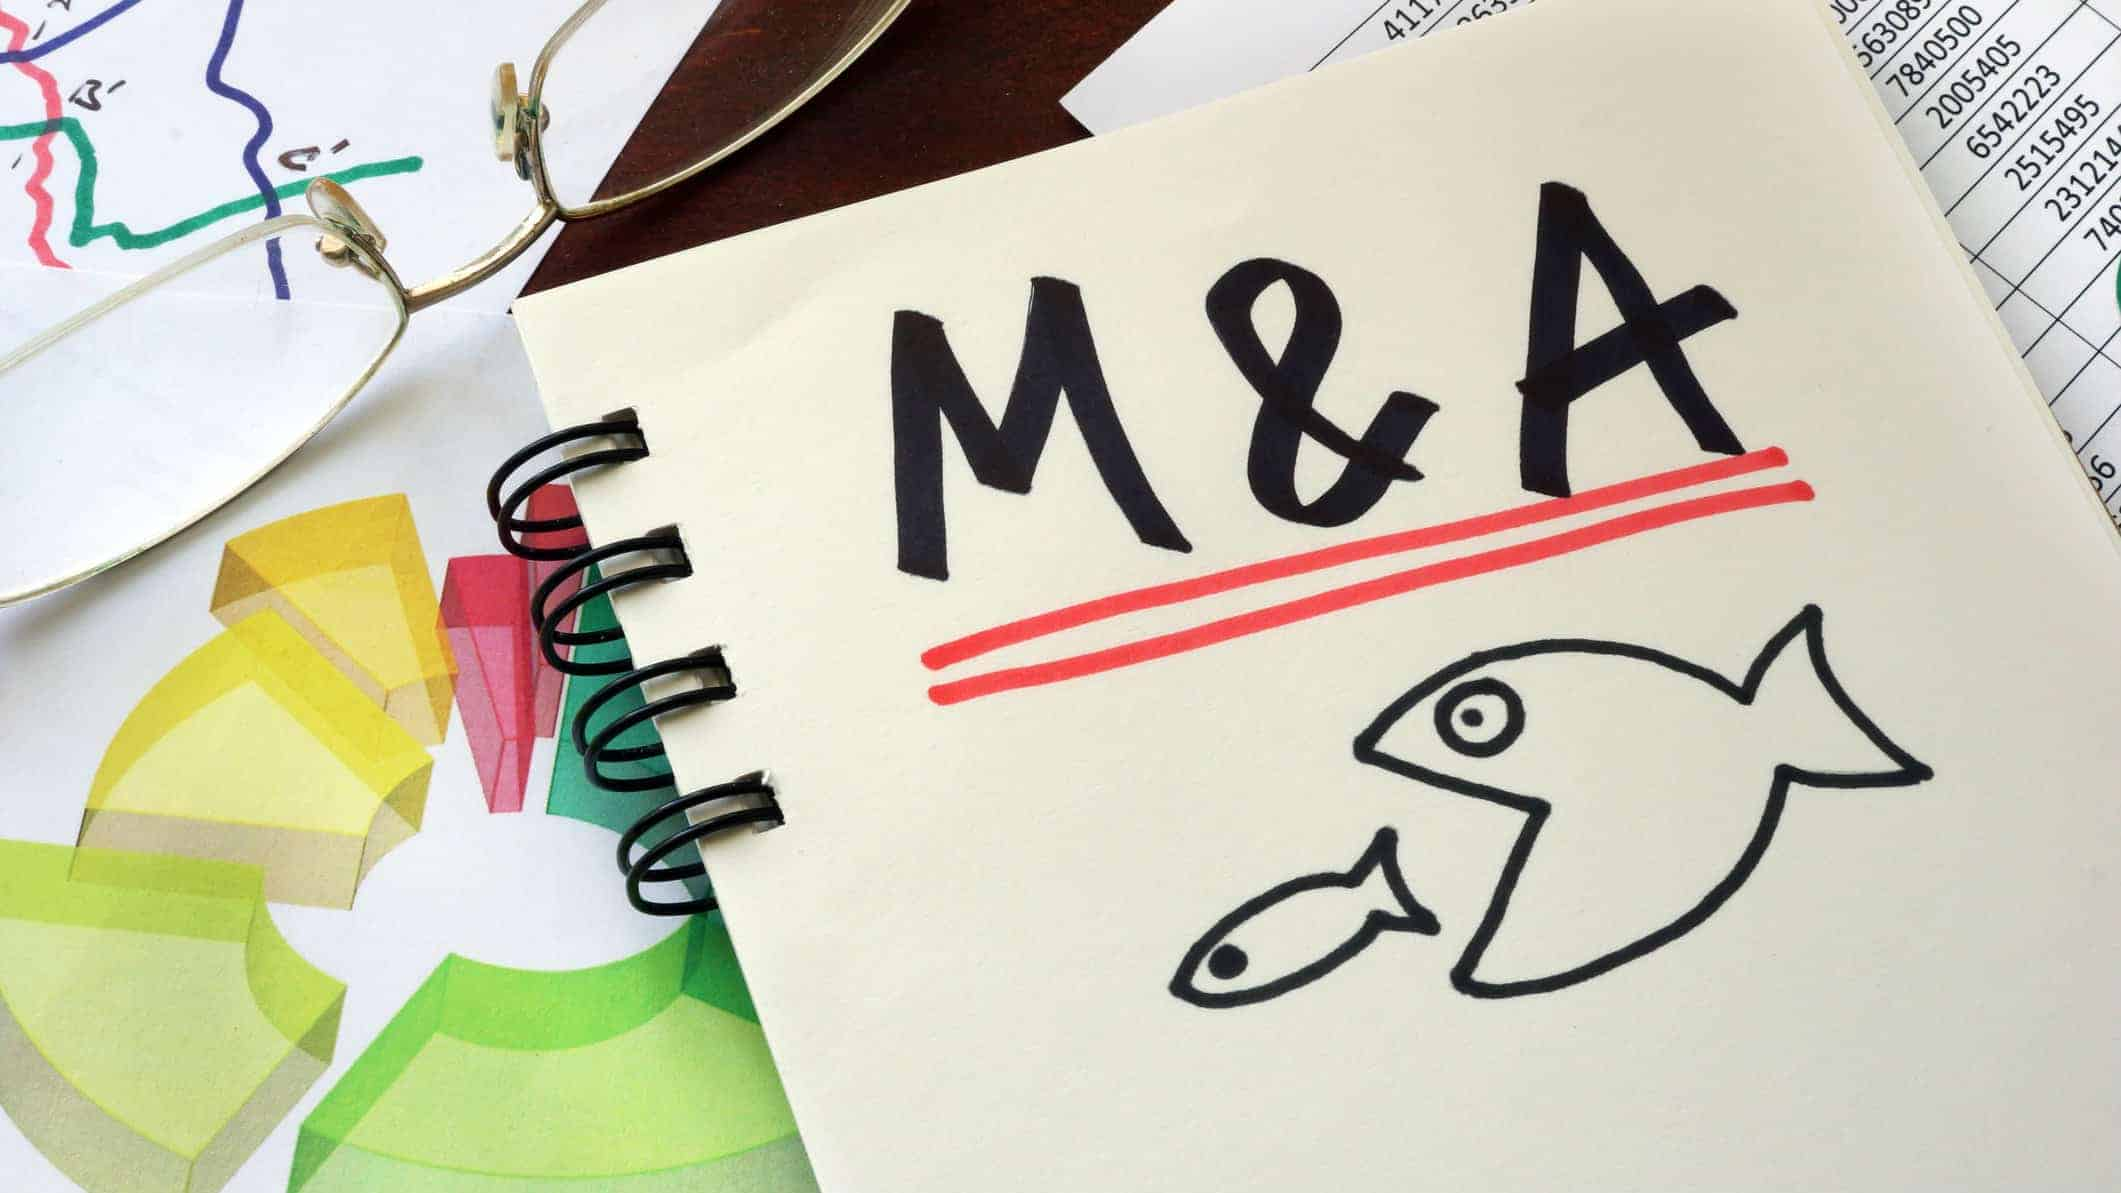 takeover M&A WPP share price